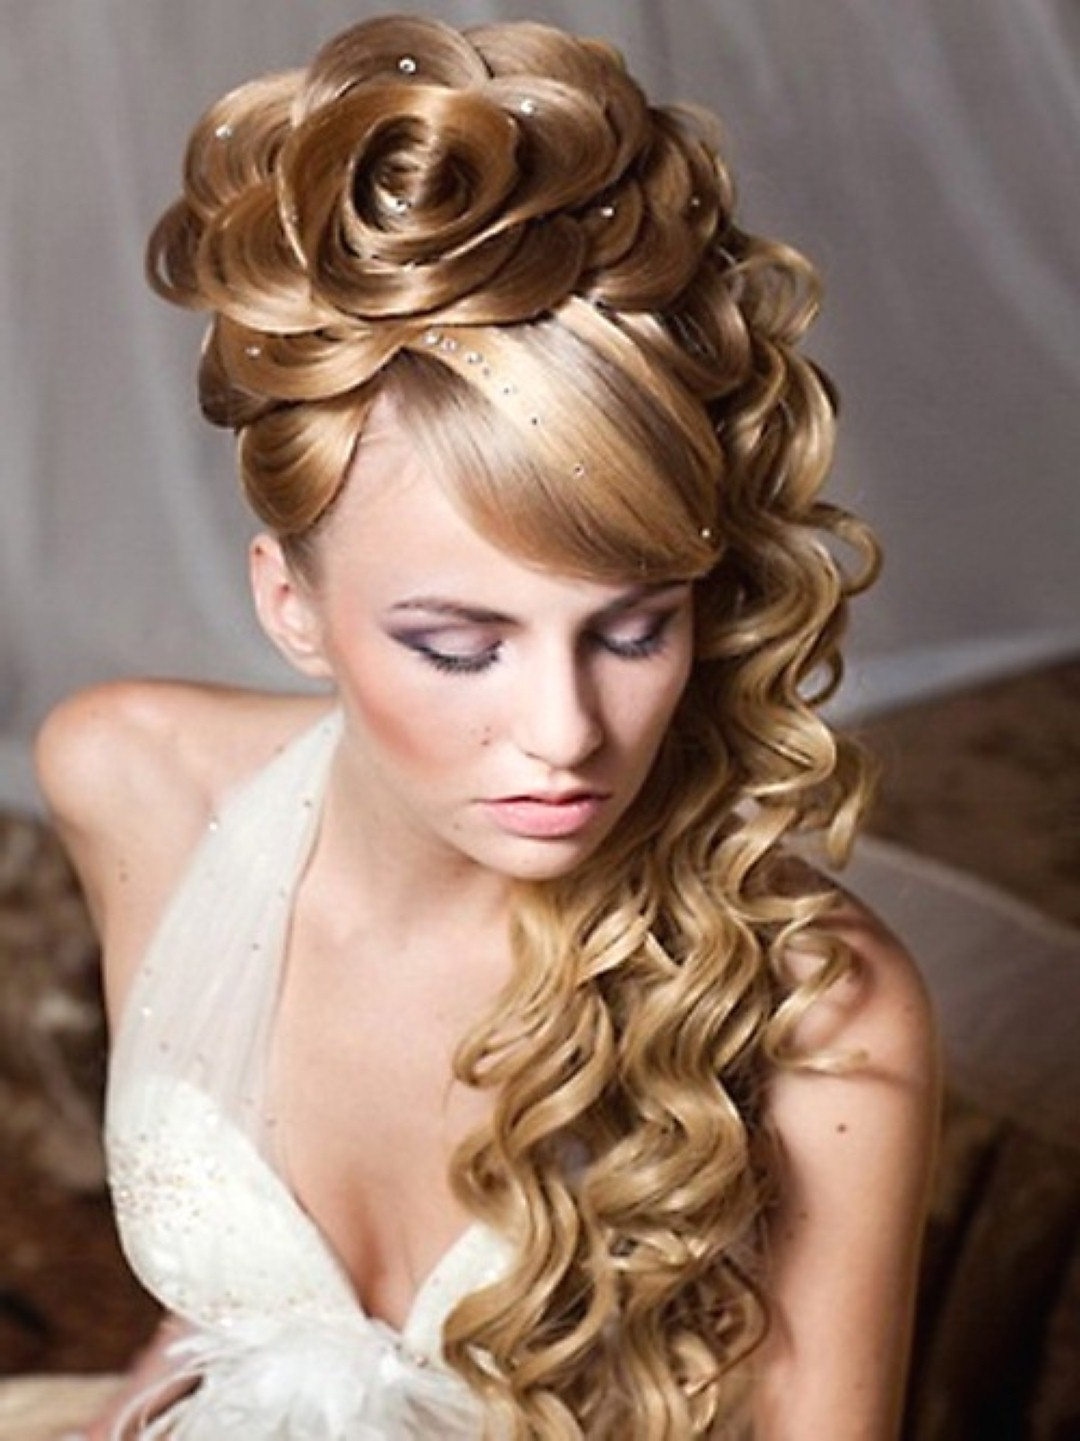 Well Known Wedding Hairstyles On The Side With Curls Within Side Updo Hairstyles Weddings To The Stunning Curls Curly Wedding (View 14 of 15)